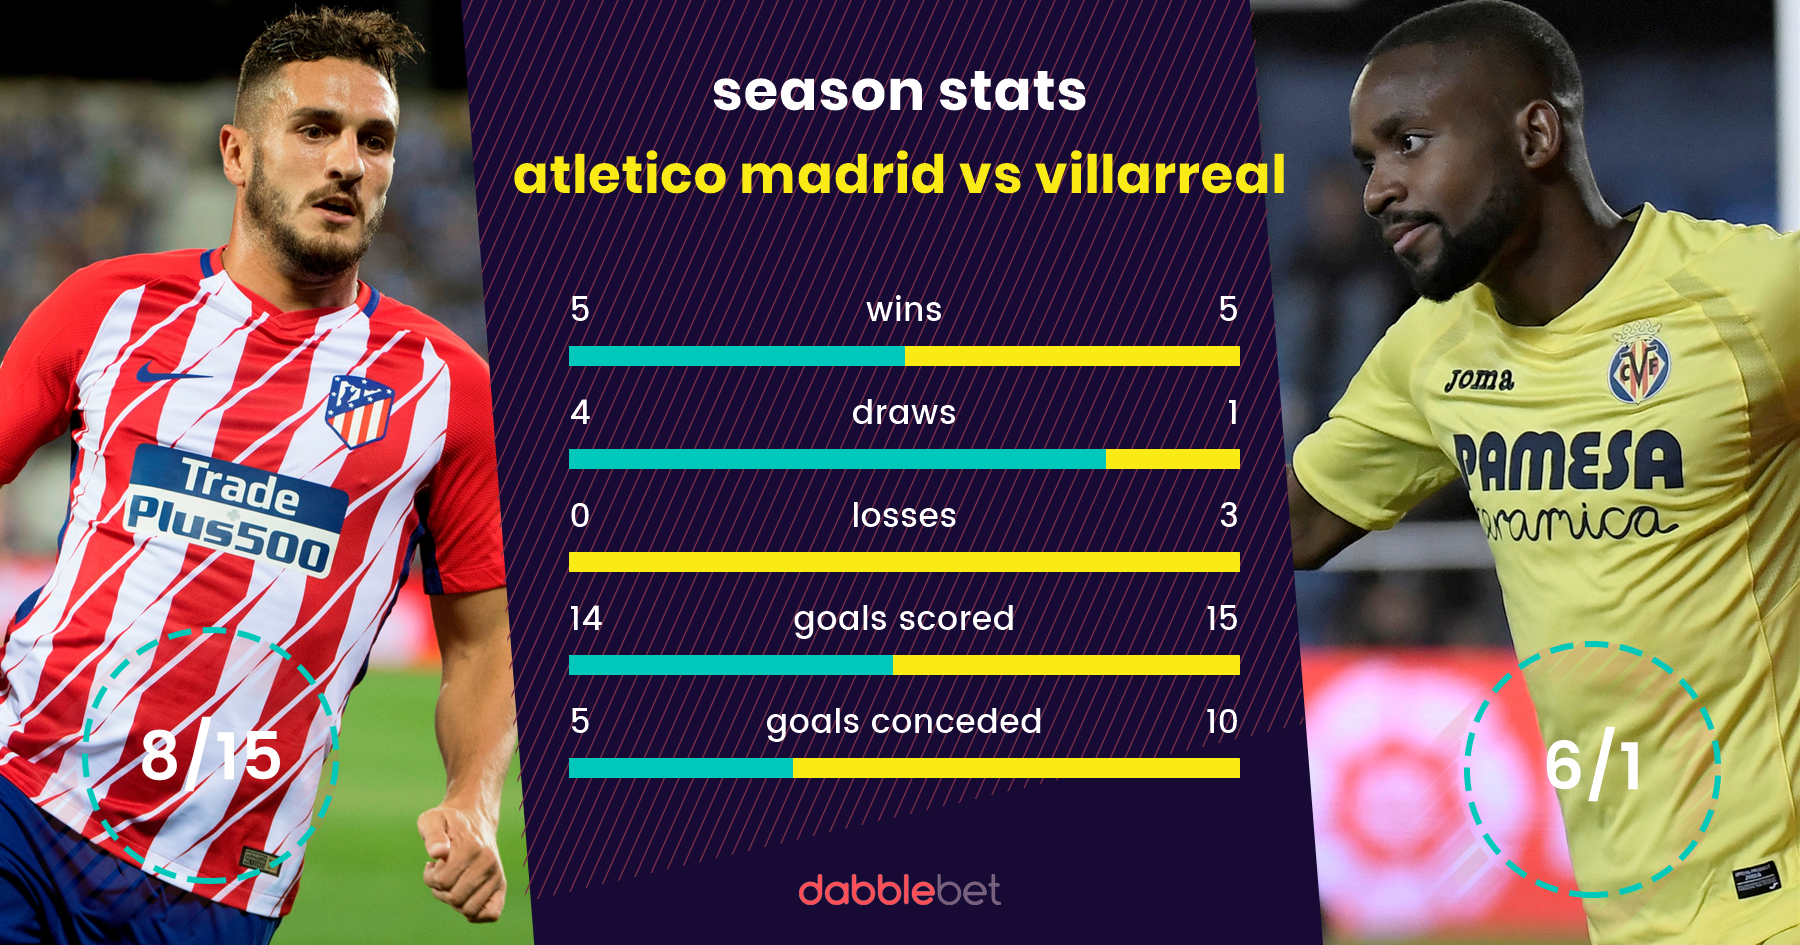 Atletico Madrid Villarreal graphic